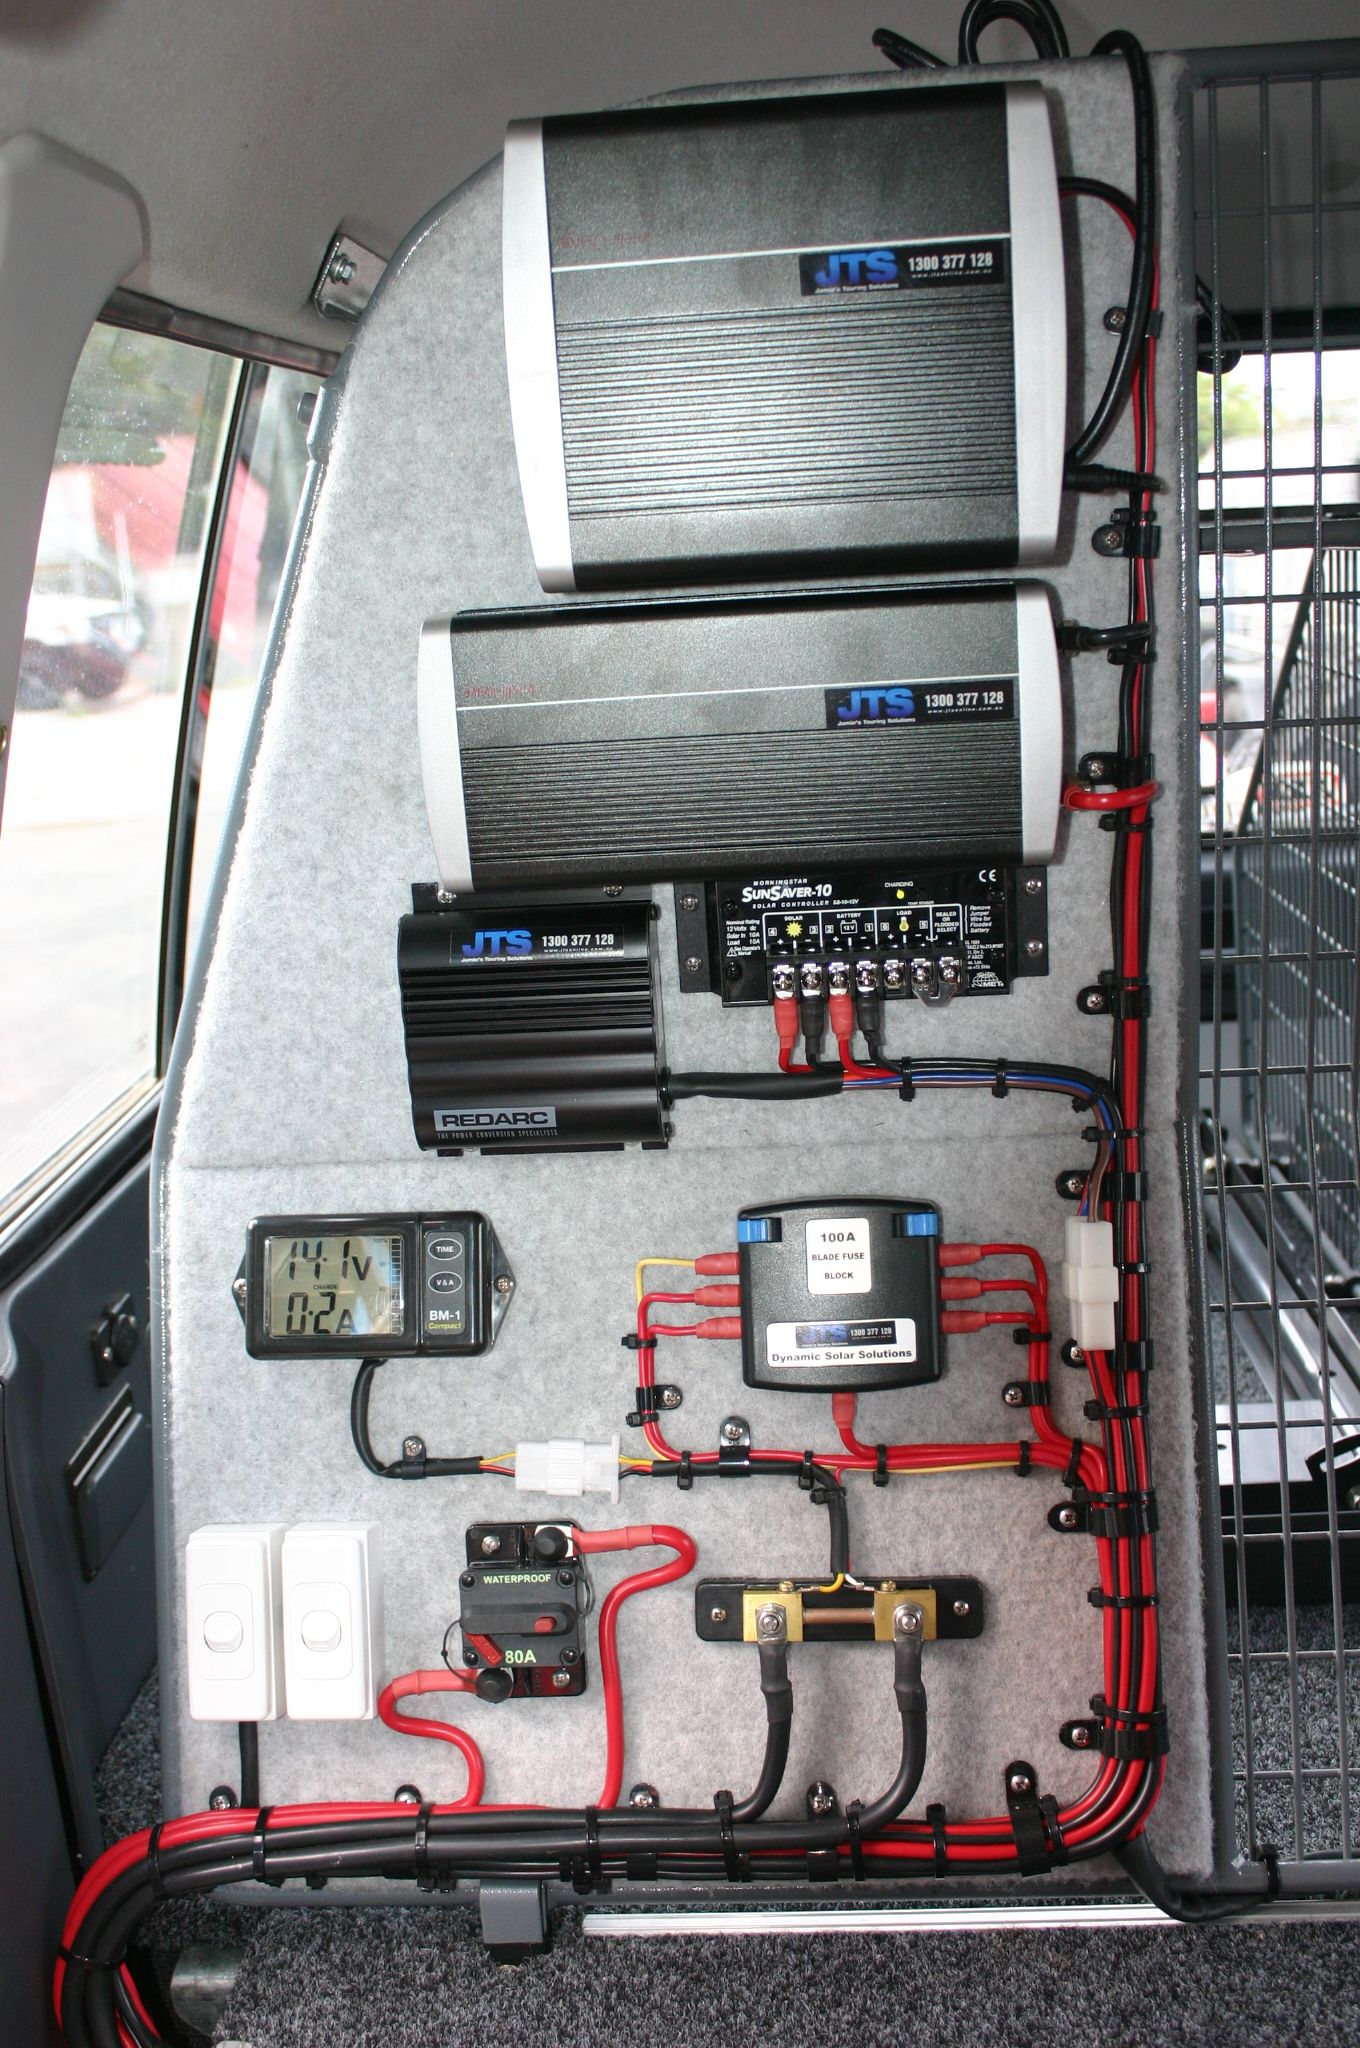 hight resolution of truck camper electrical systems more details can be found by clicking on the image campingtips